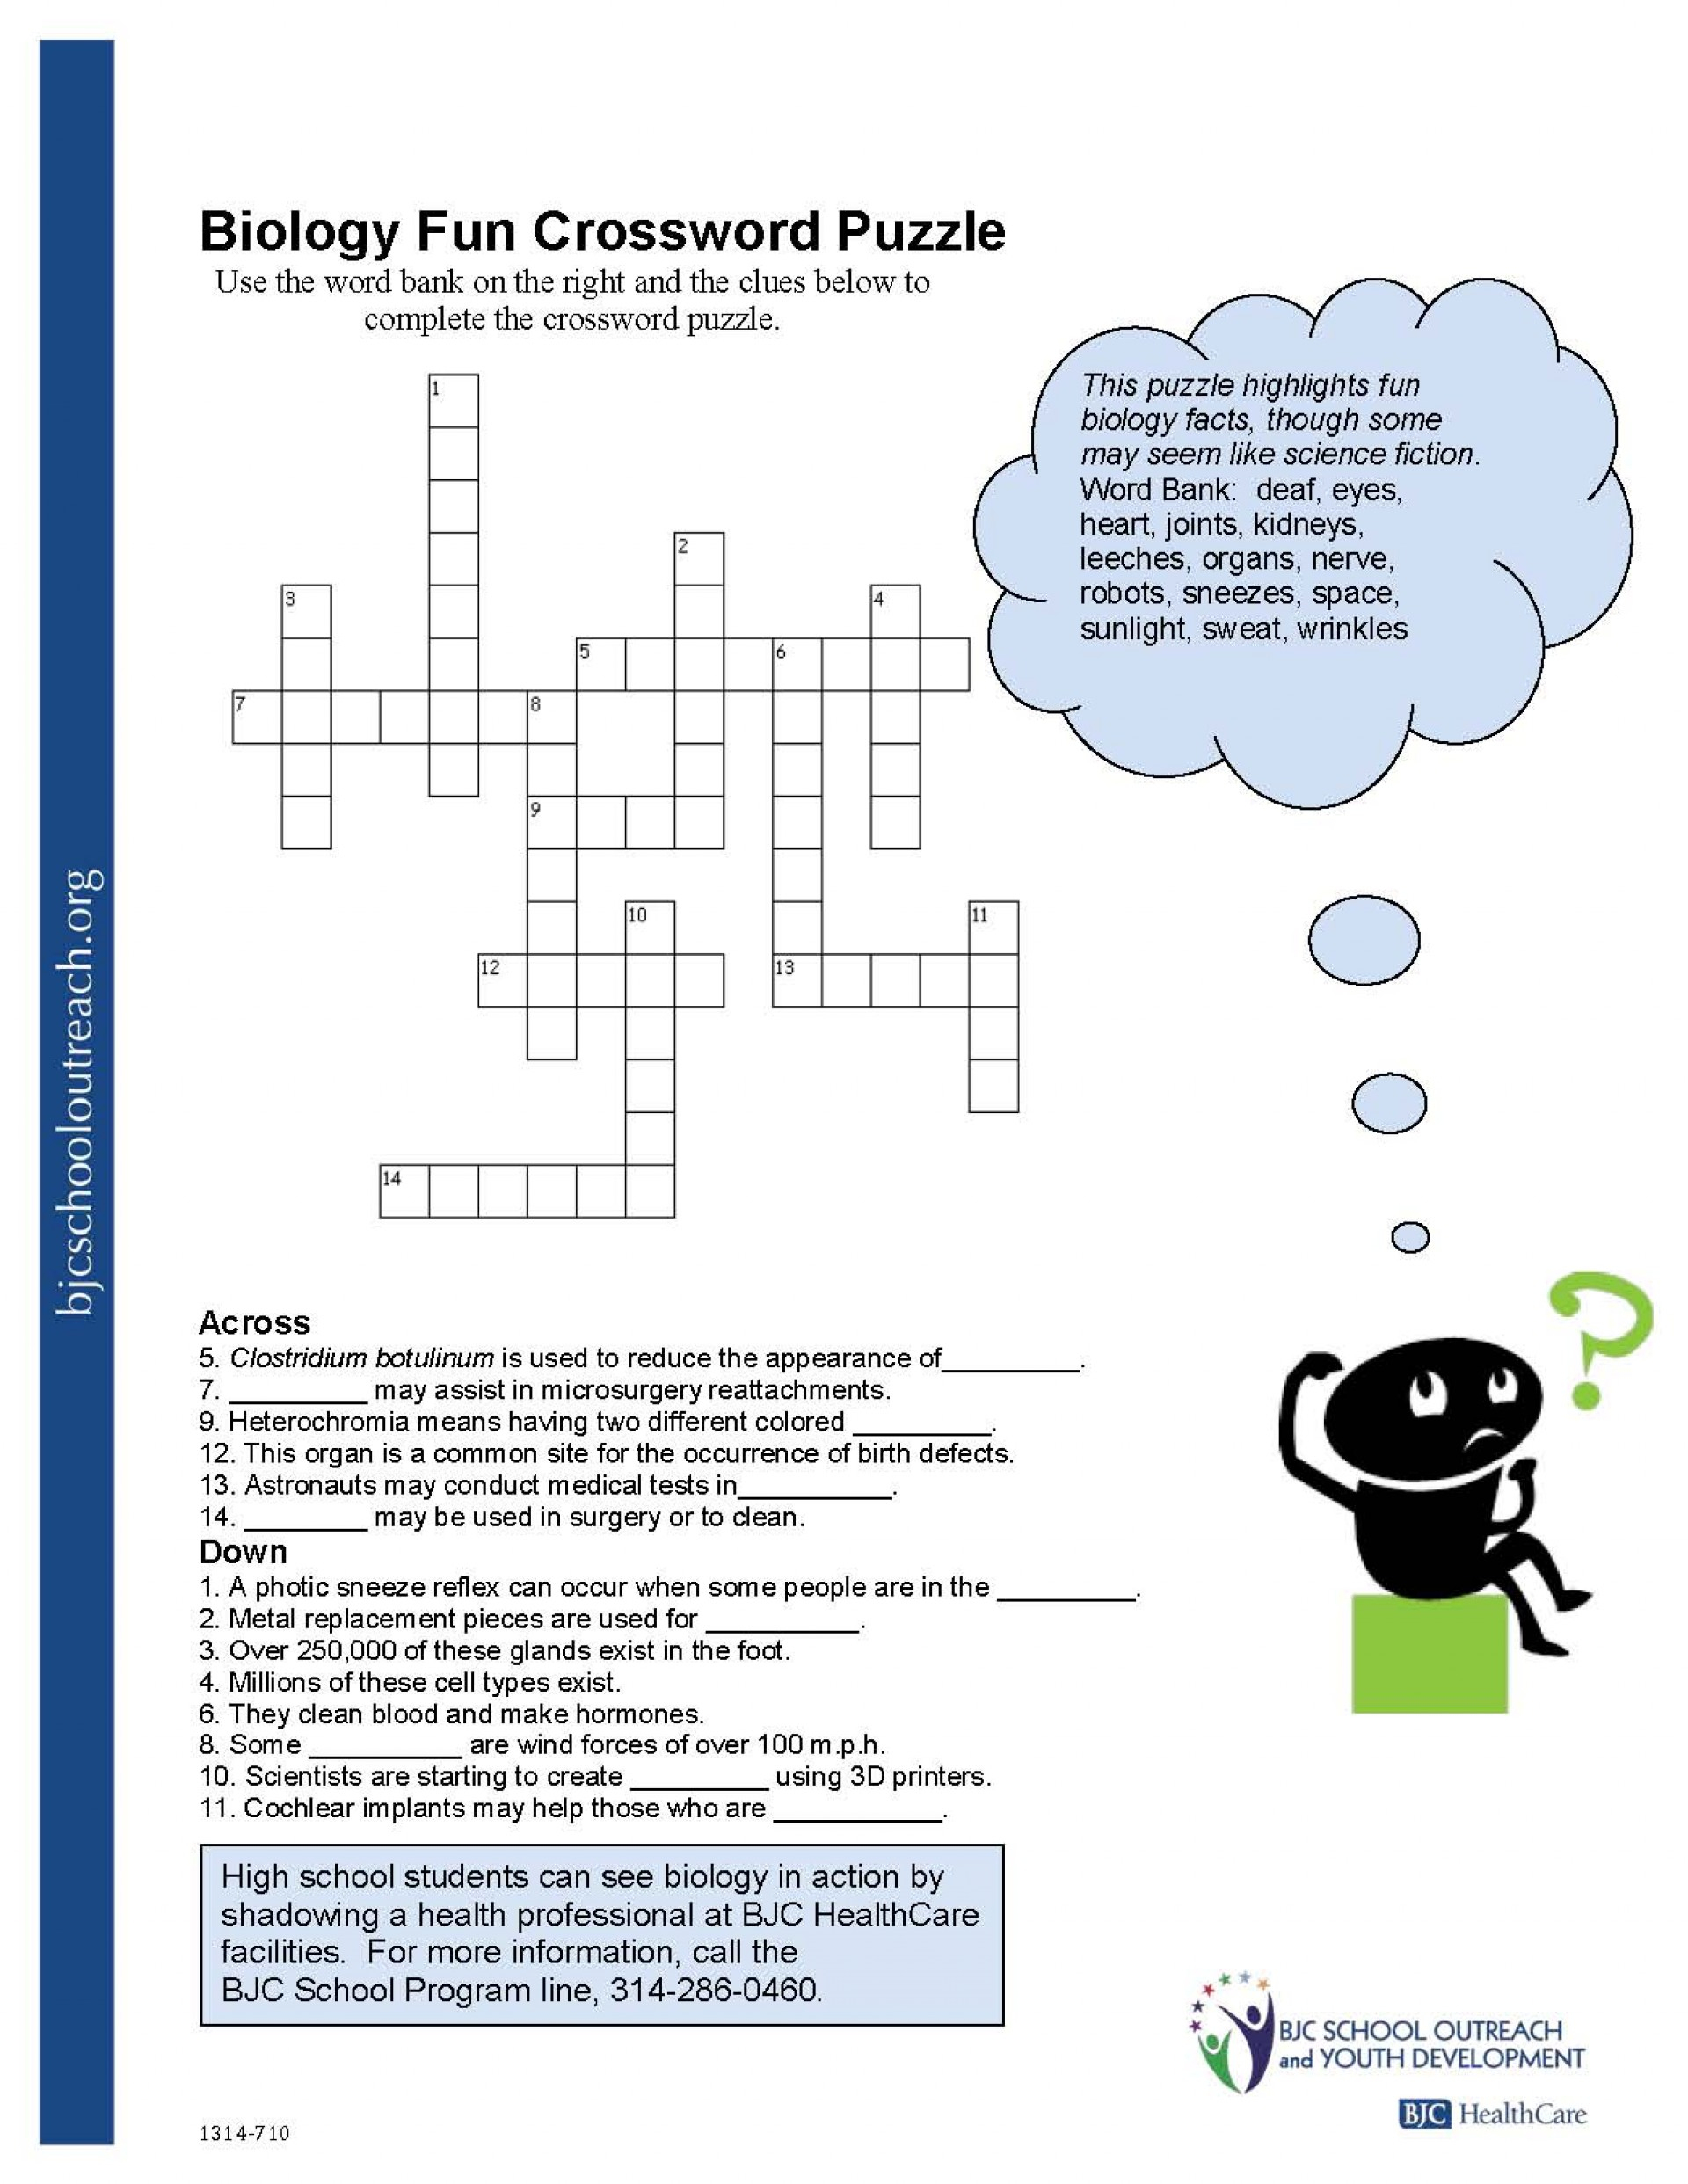 Crosswords Crossword Puzzle Worksheets For Middle School Biology Fun - Free Printable Biology Worksheets For High School